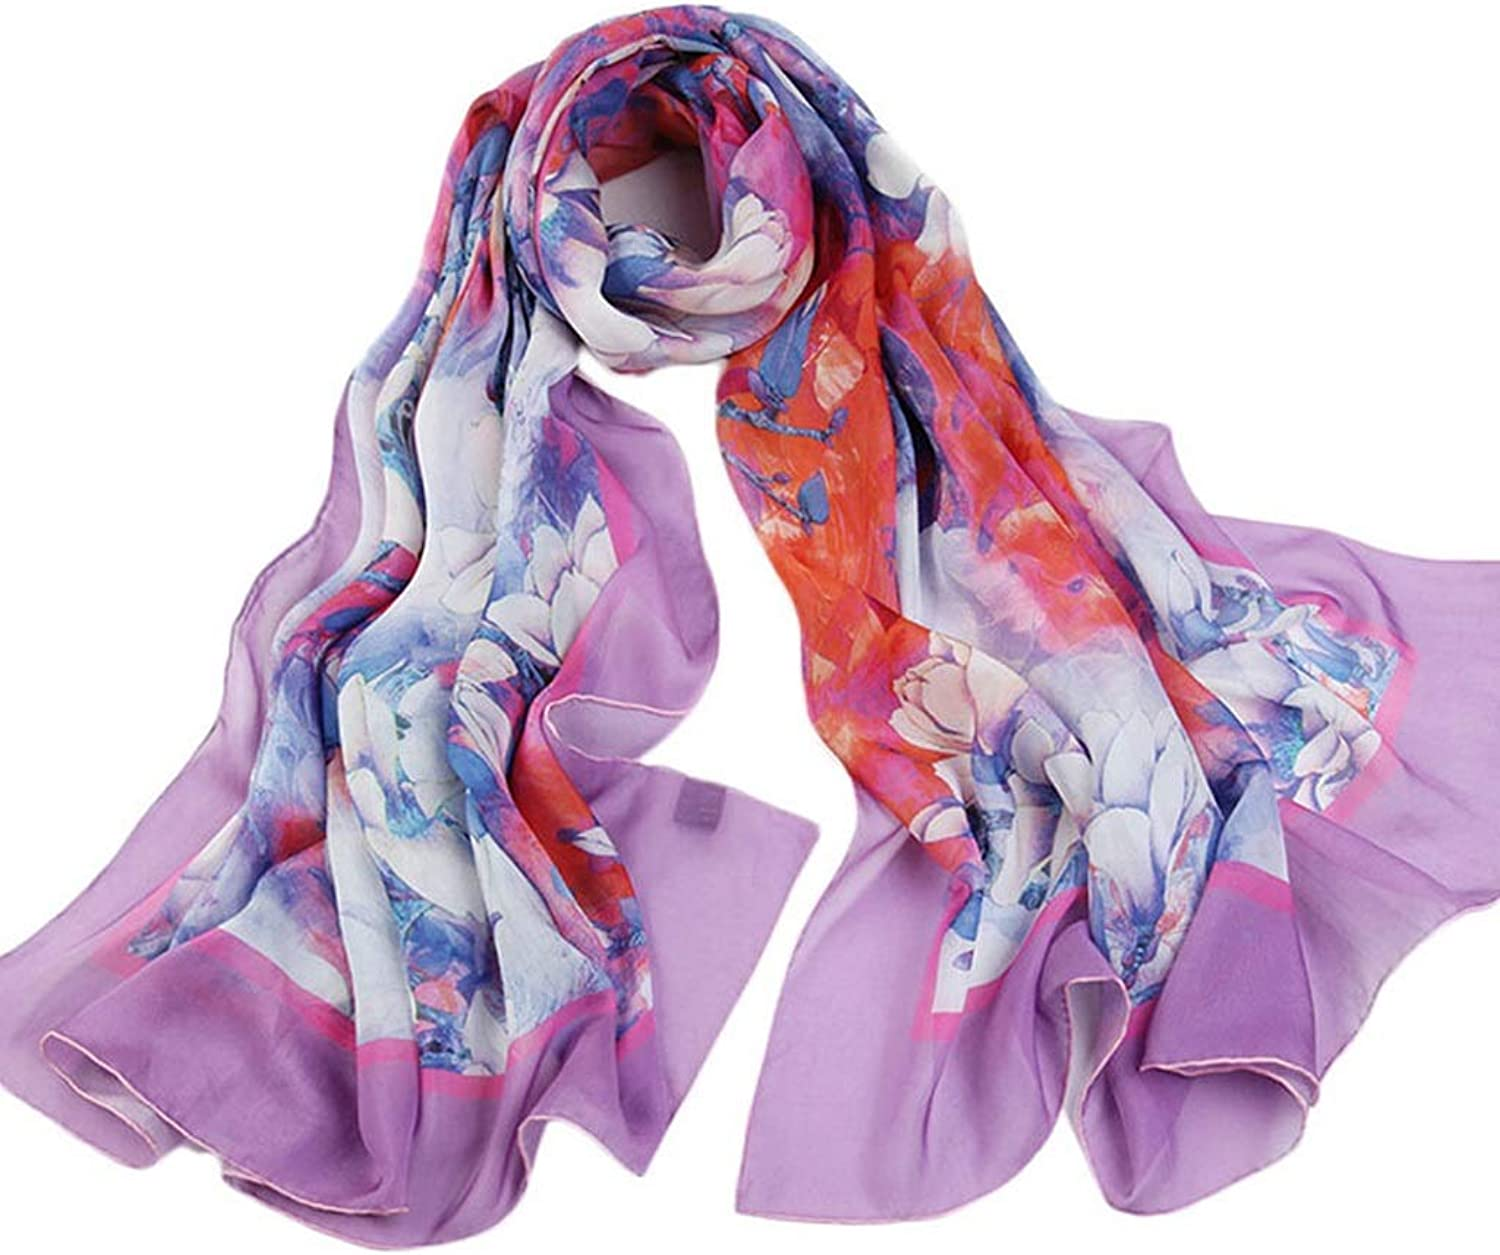 Mulberry Silk Long Paragraph Wild Sunscreen Ladies Scarf Shawl Beach Towel (color   C, Size   175  110cm)